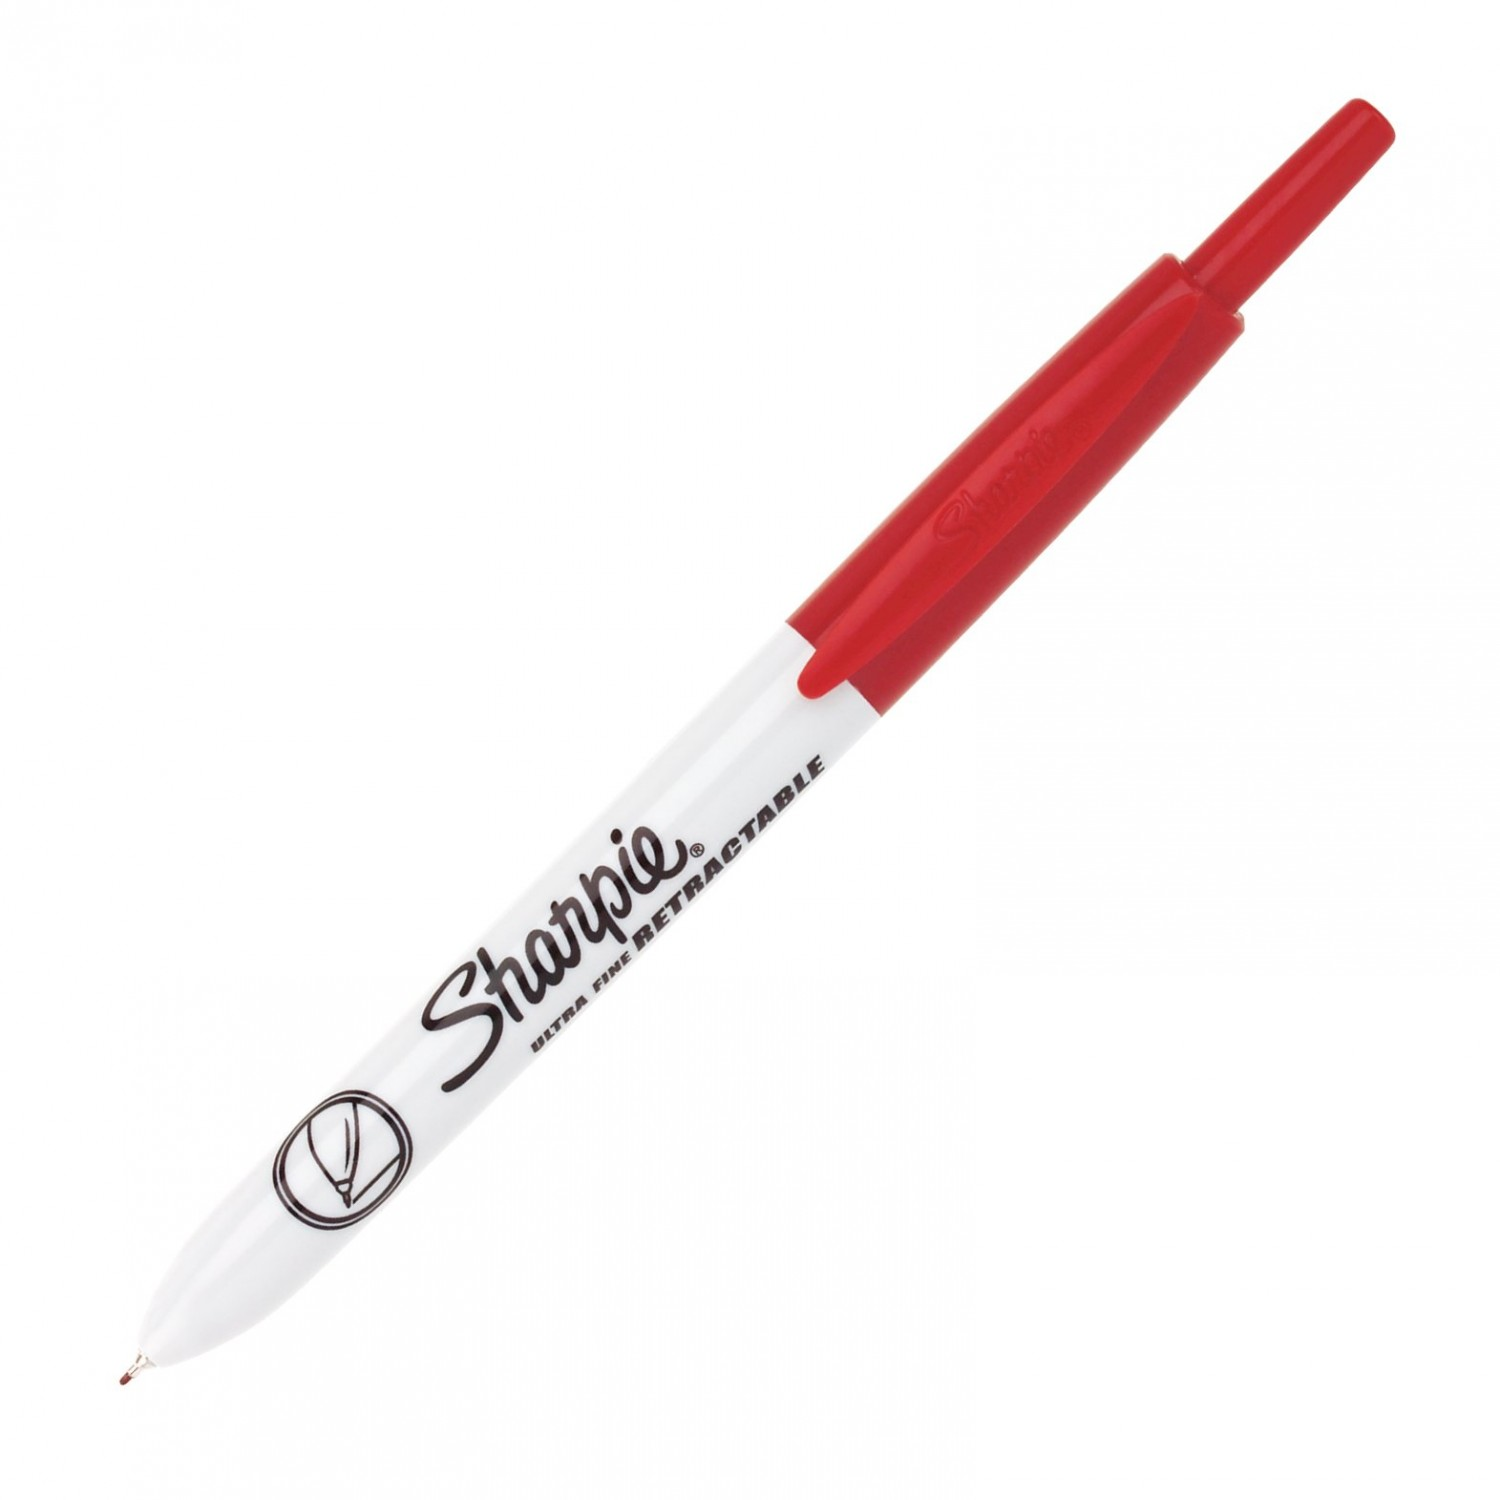 Sharpie Ultra Fine Retractable Marker, Red